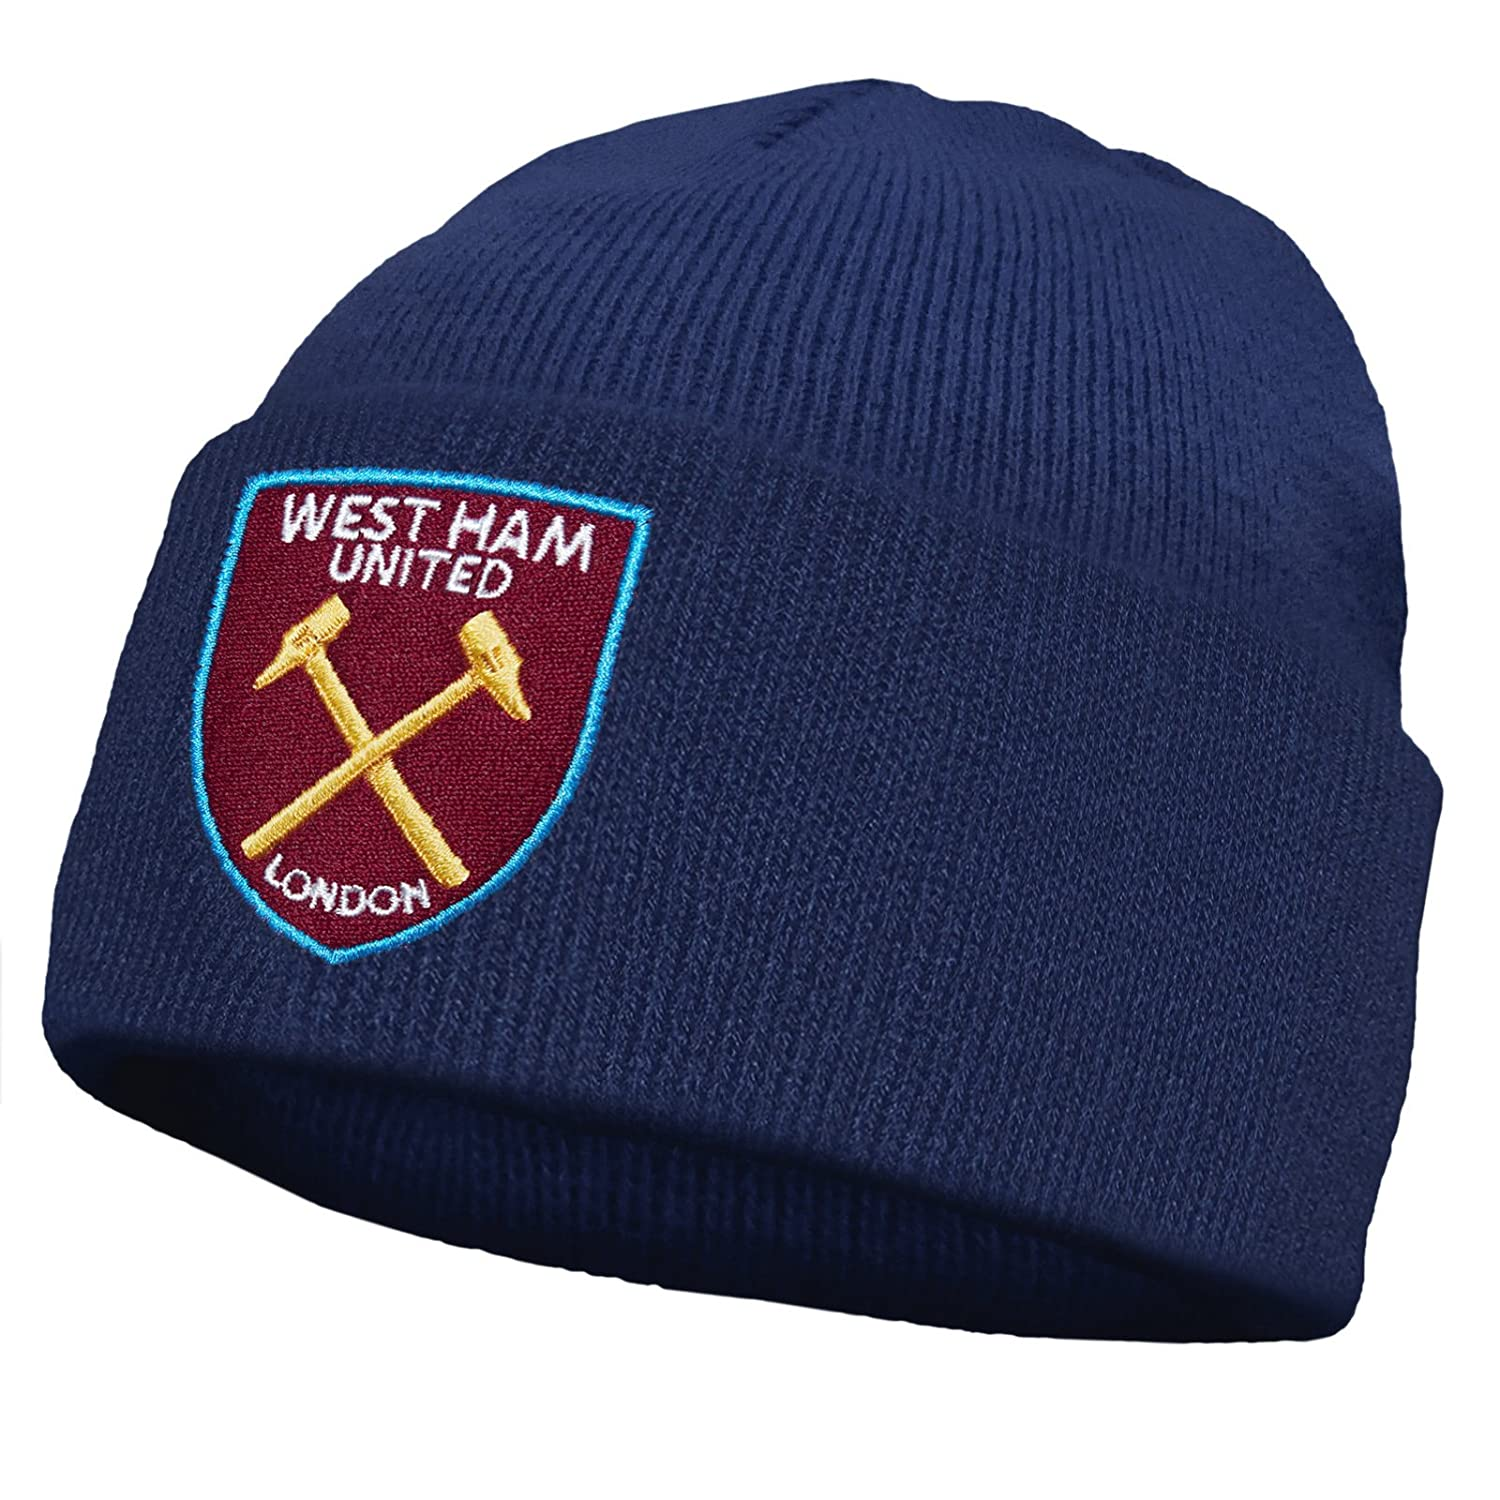 Amazon.com  West Ham United Football Club Official Soccer Gift Knitted  Beanie Hat Black  Clothing 9988a76cc1b